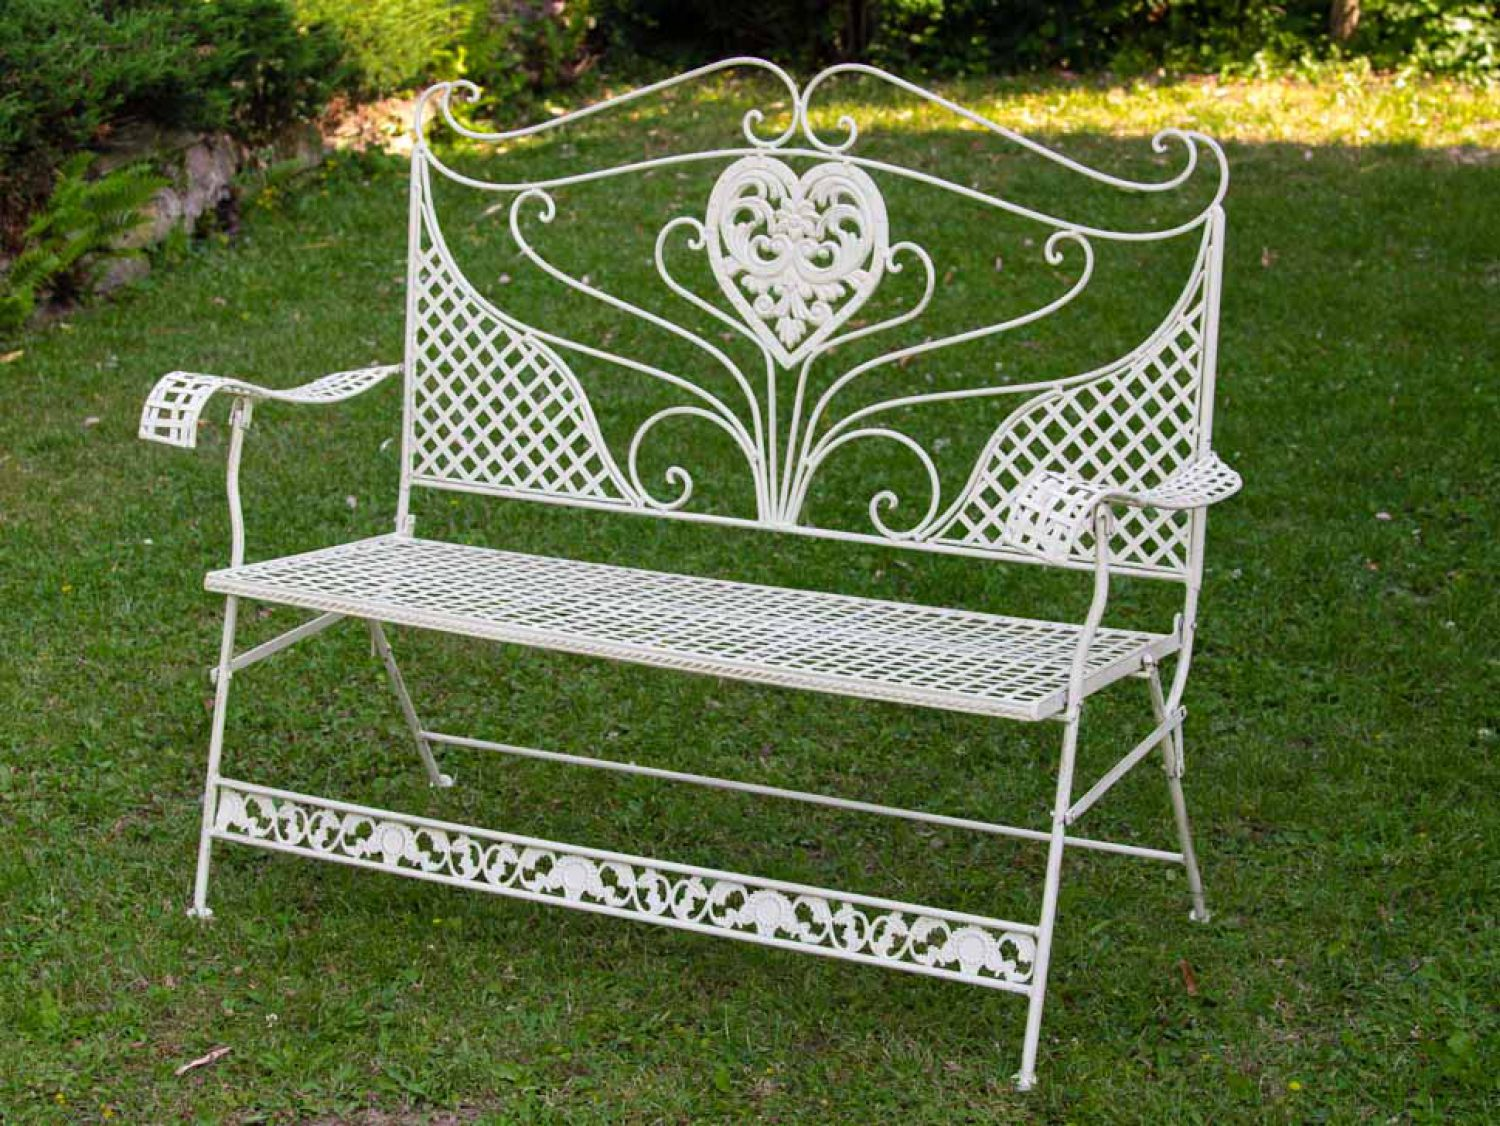 nostalgia garden bank heart flowers iron antique white outdoor furniture bank ebay. Black Bedroom Furniture Sets. Home Design Ideas